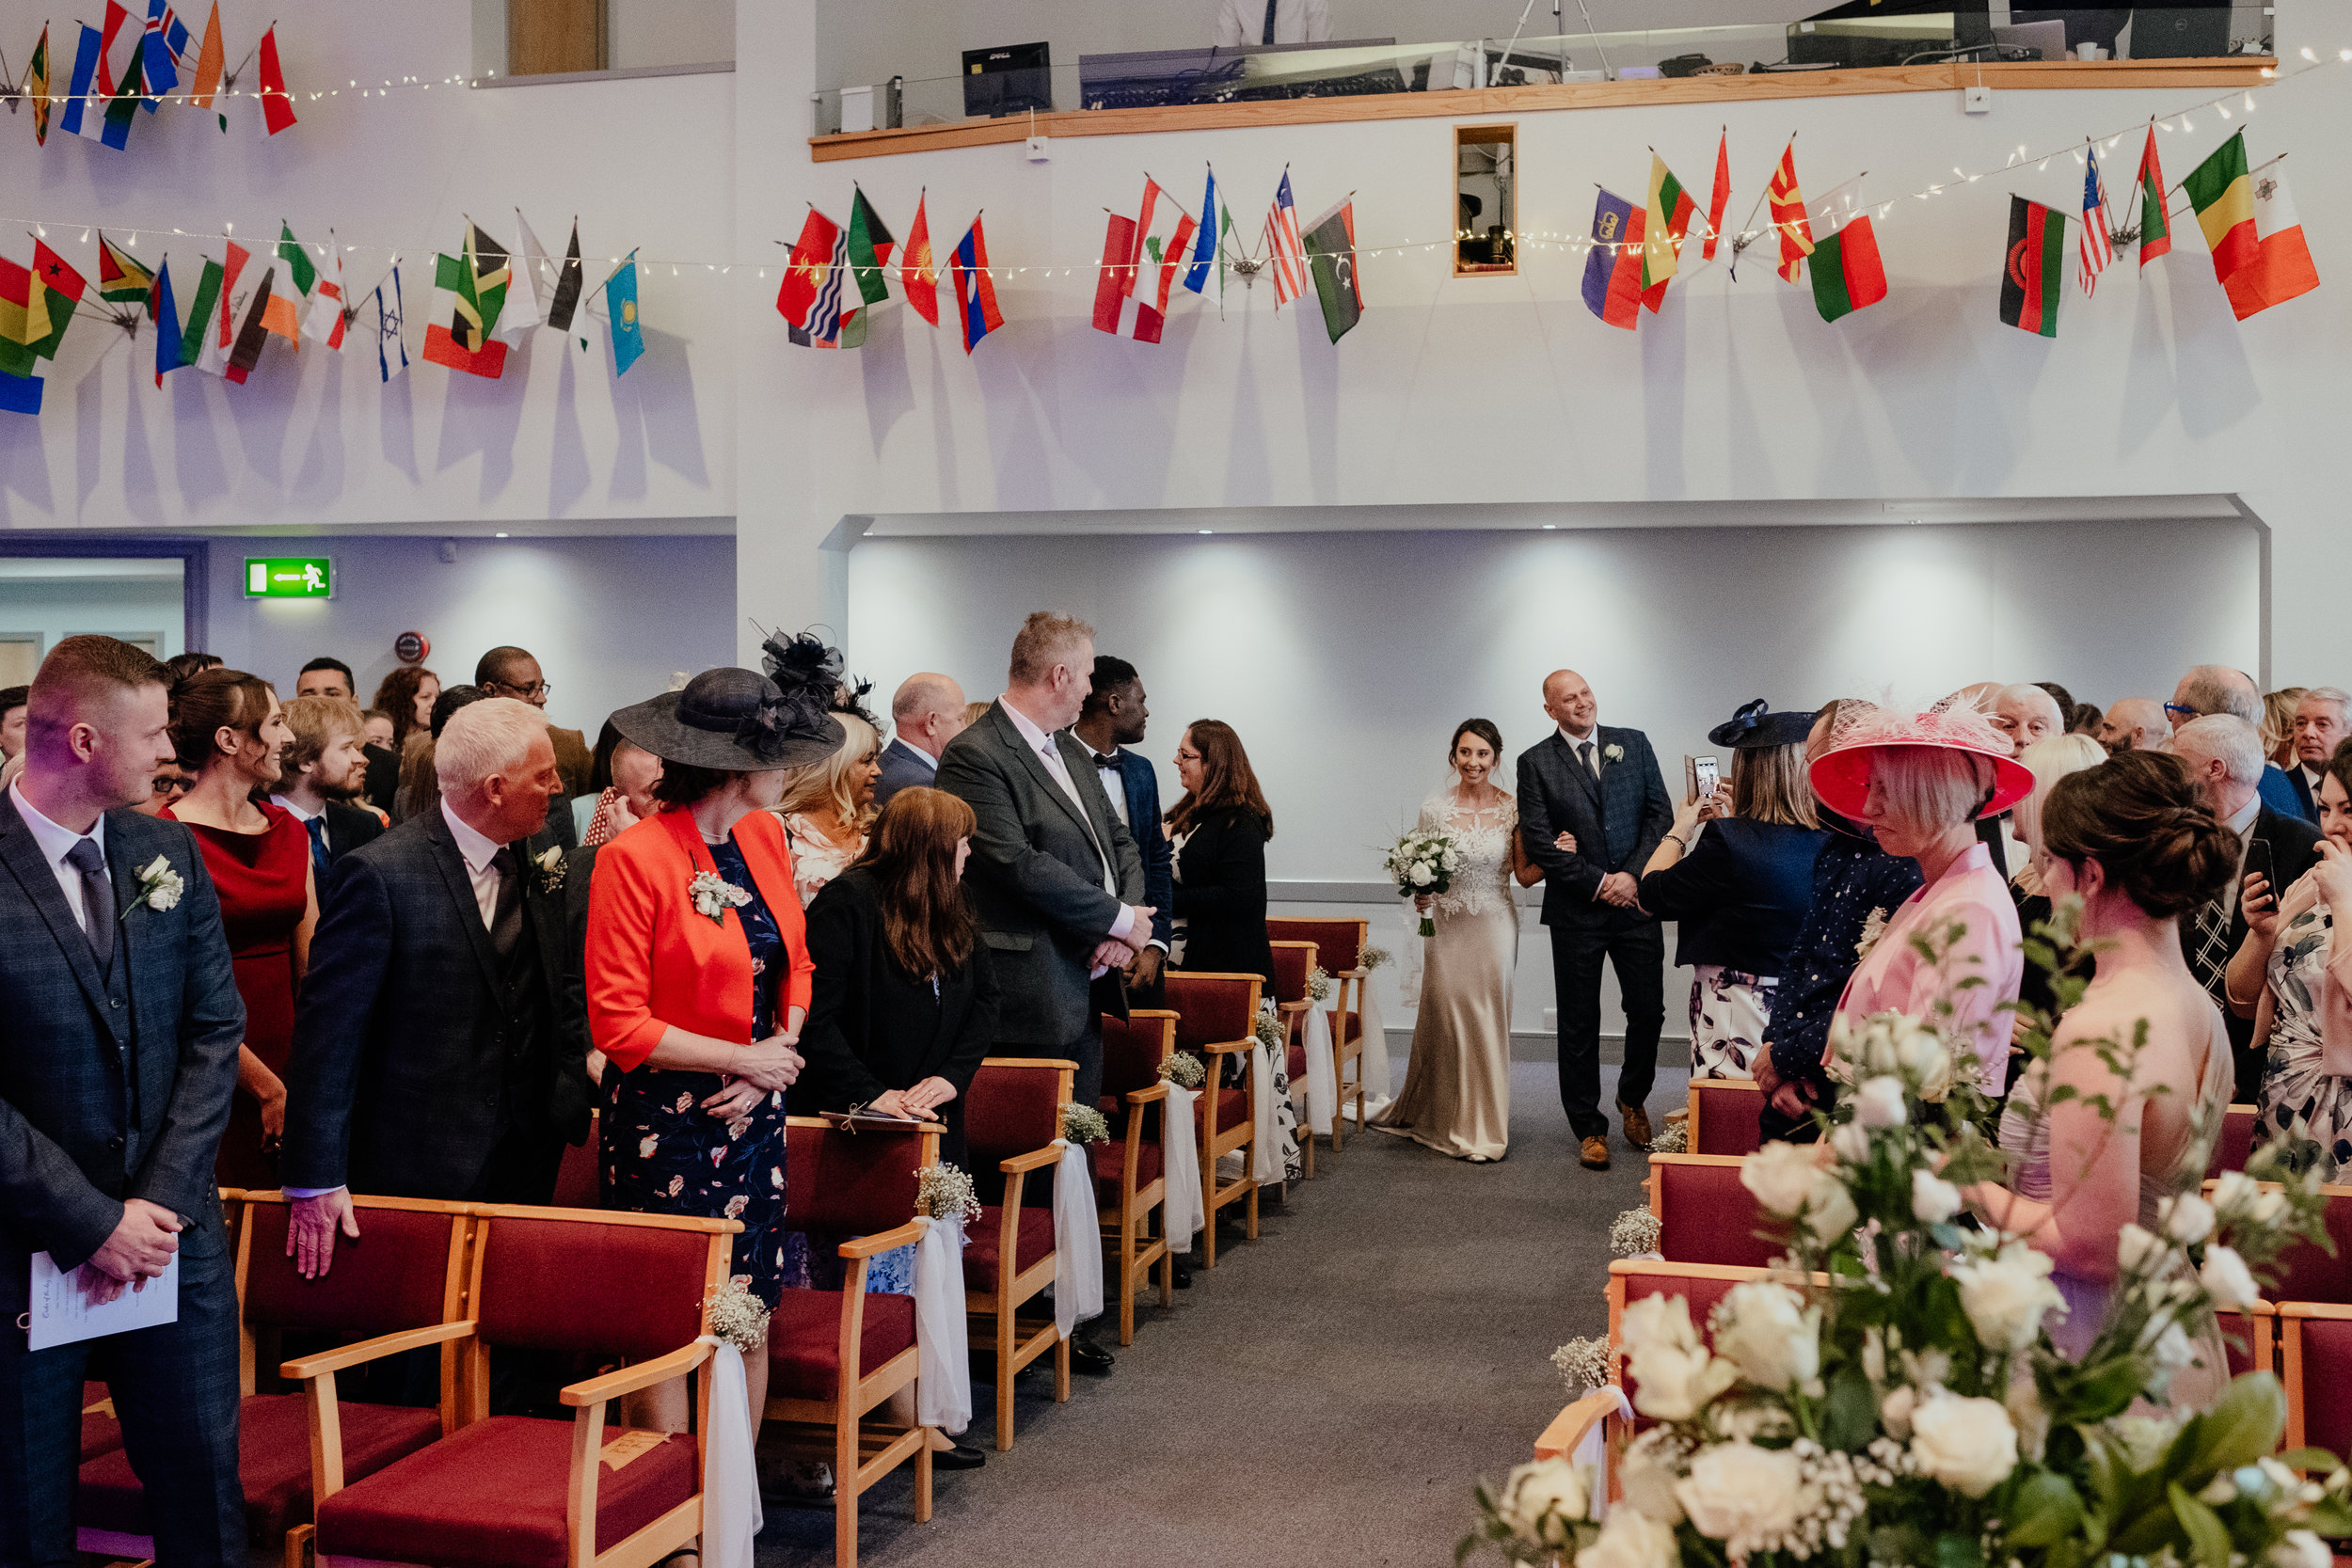 Bride walks down the aisle with Father of the Bride and Groom waits for her at the altar